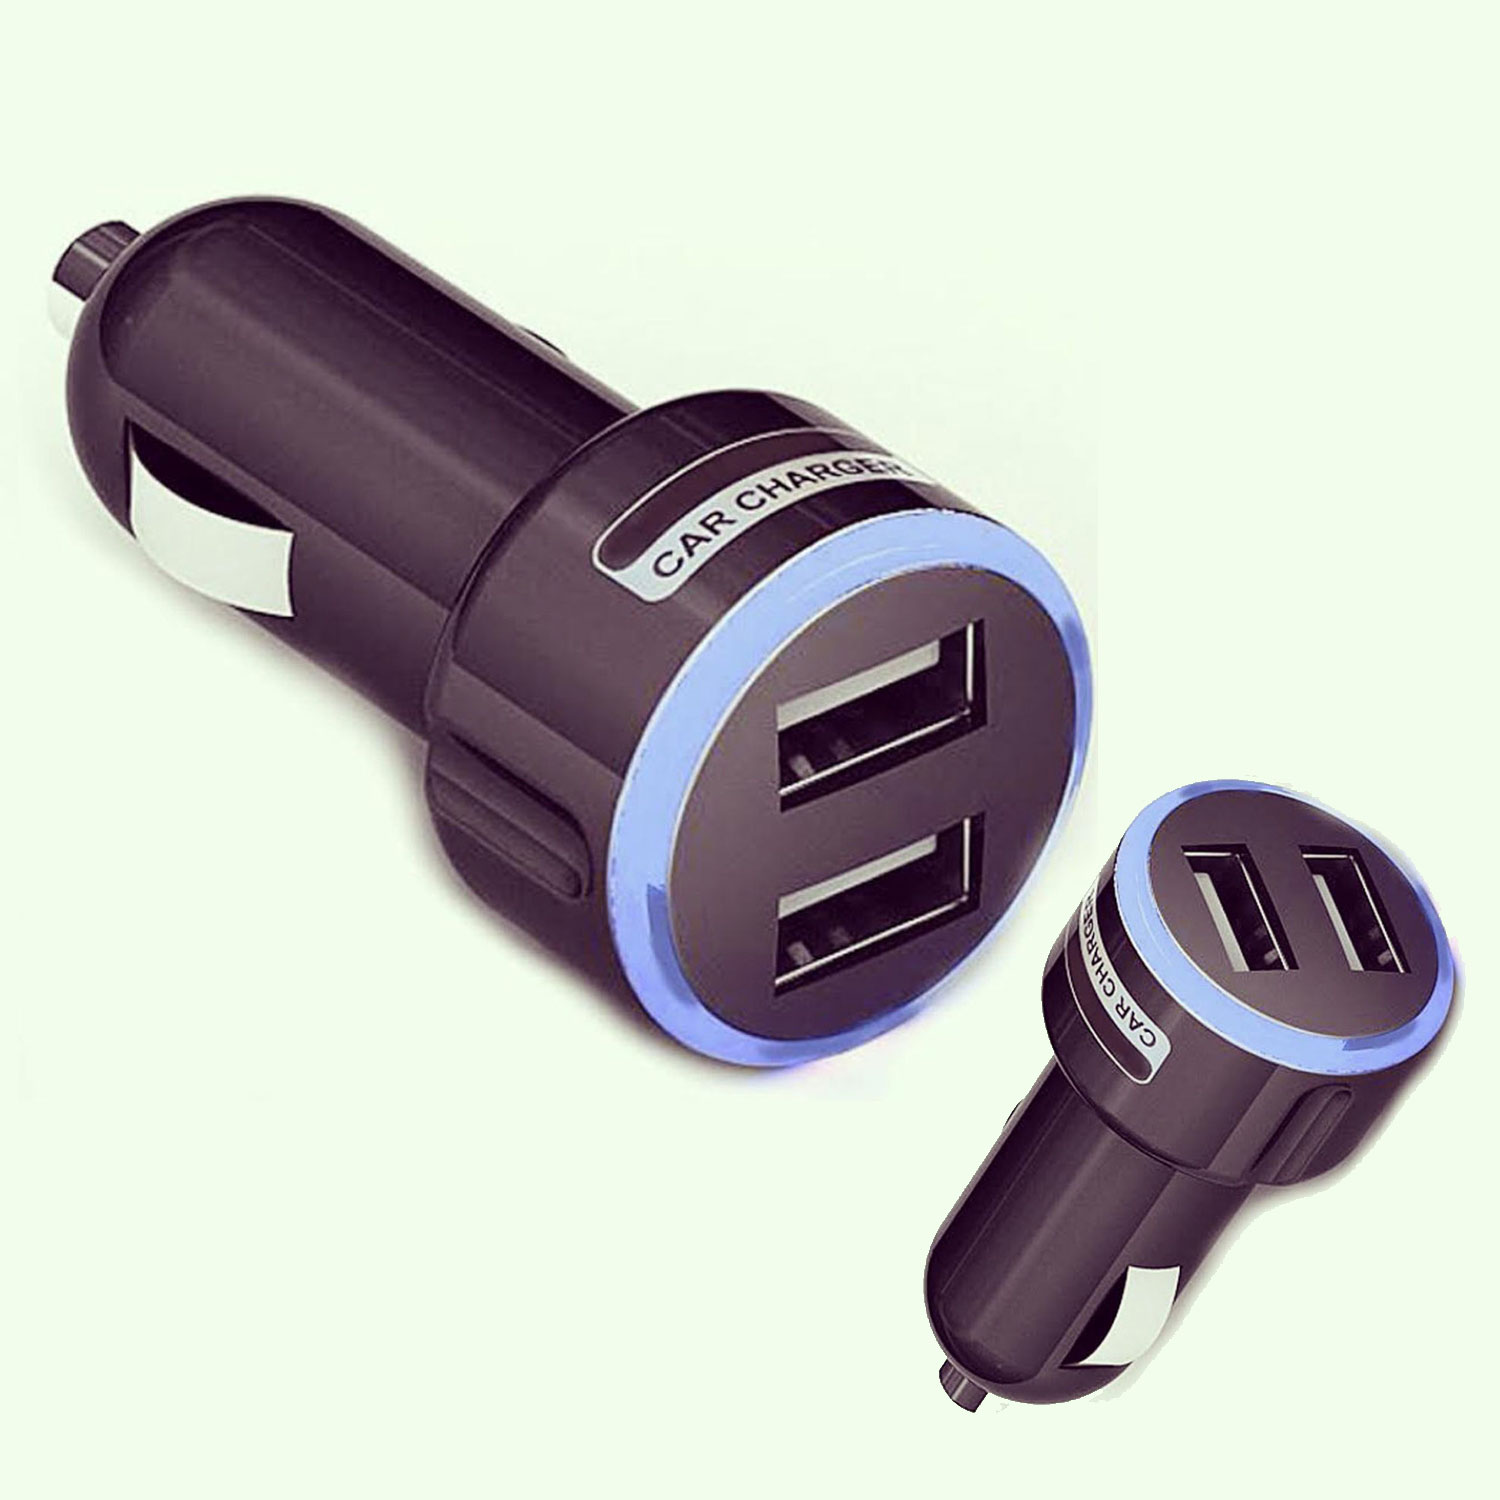 Colored usb car charger - High Quality 2 Port Dual Universal Usb Car Charger Color Blue For Smart Phone Fc